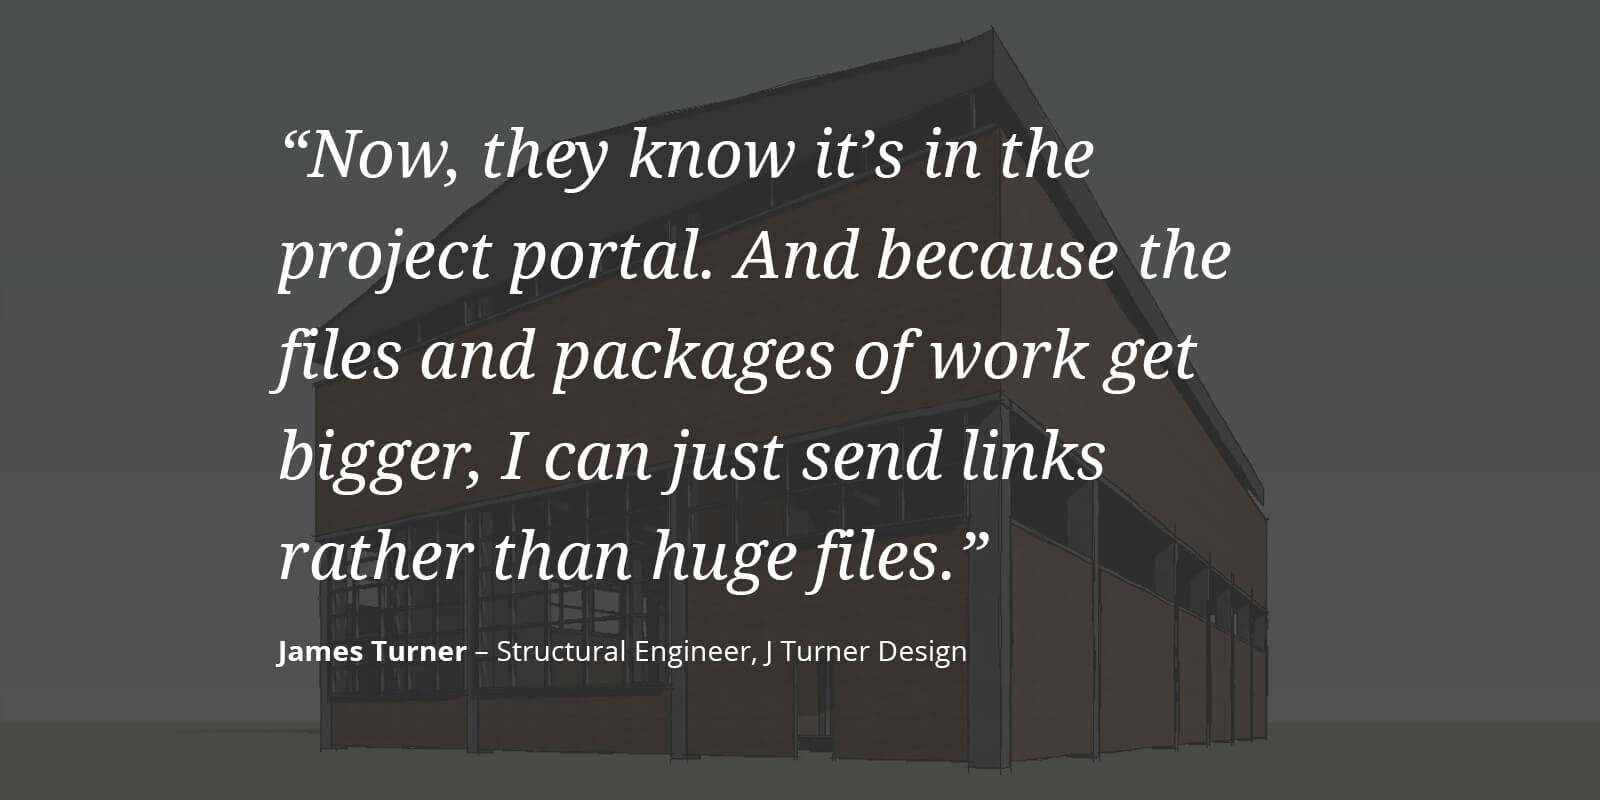 James Turner, director of J Turner Design, uses technology to punch above his weight.